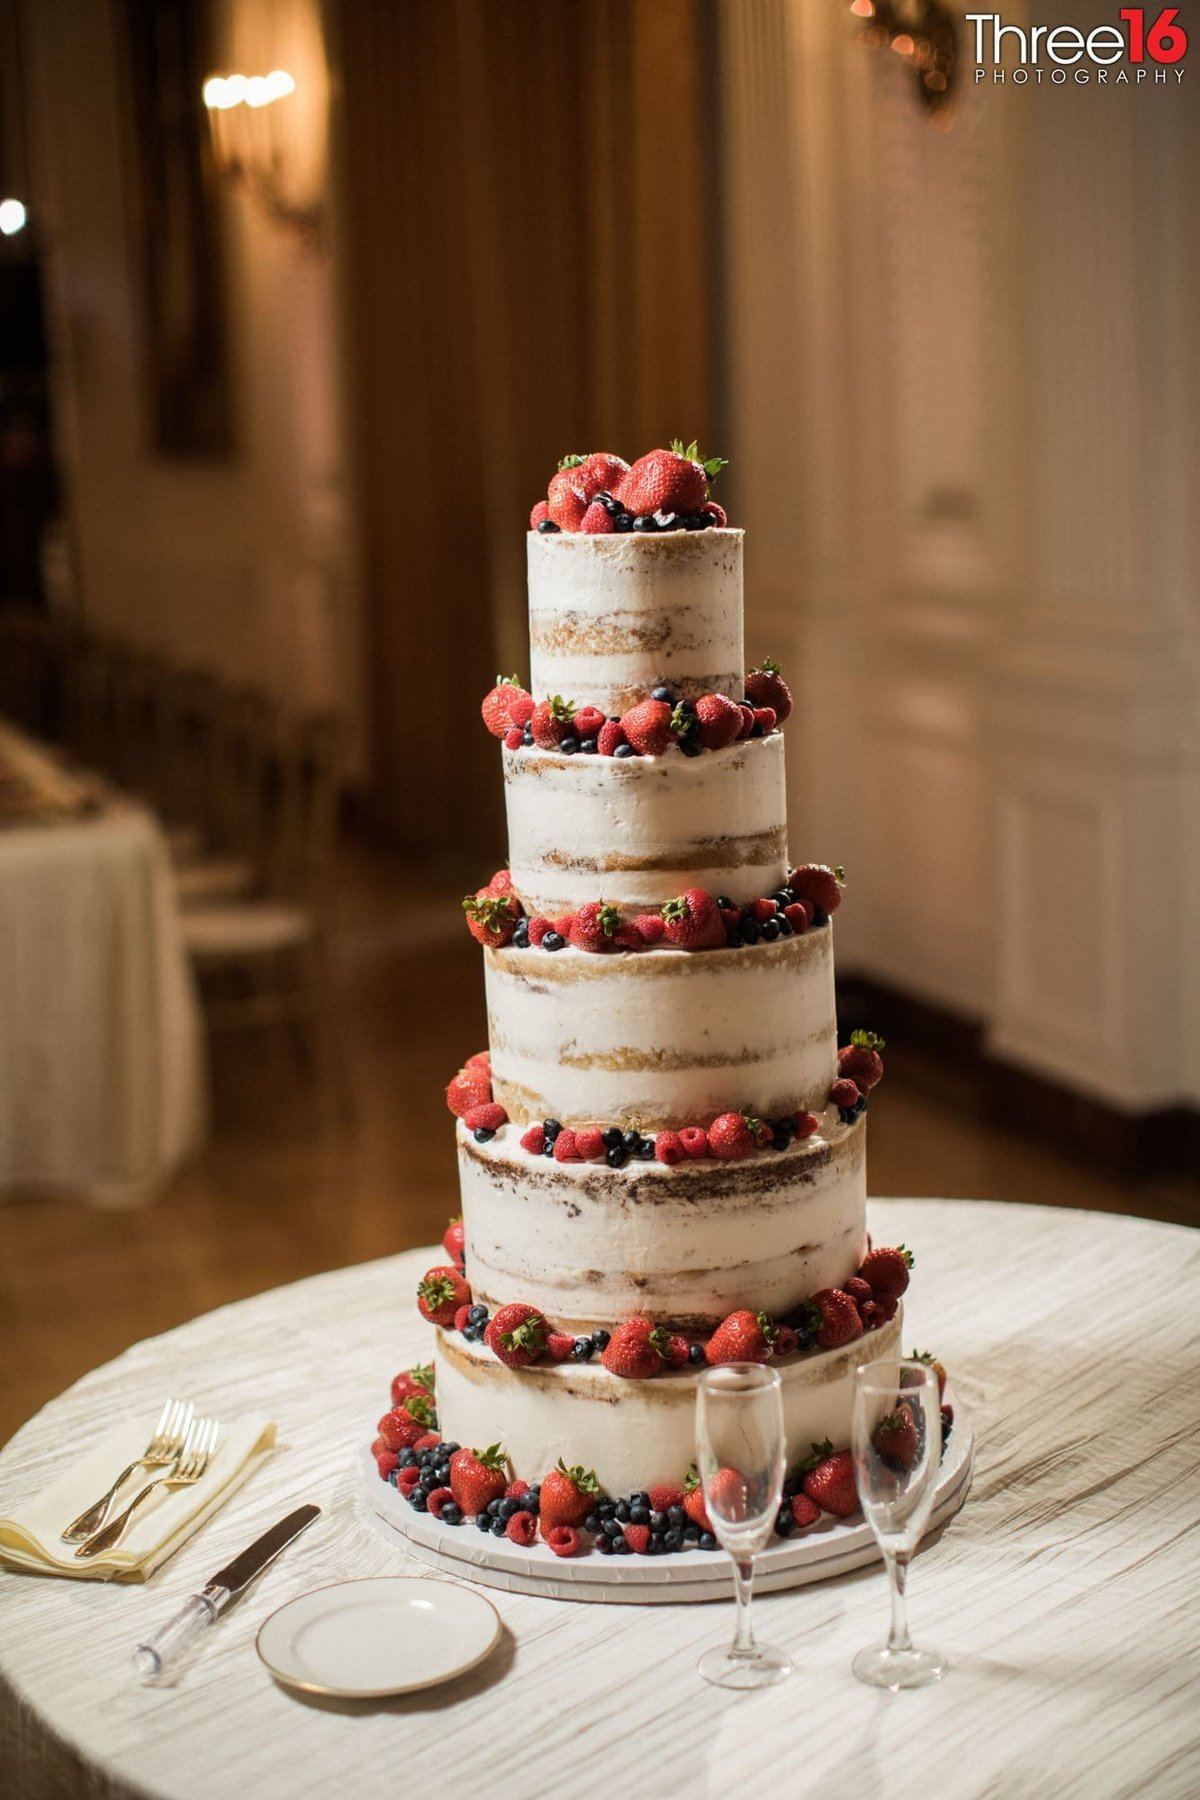 Amazing 5-tiered berry laced naked wedding cake